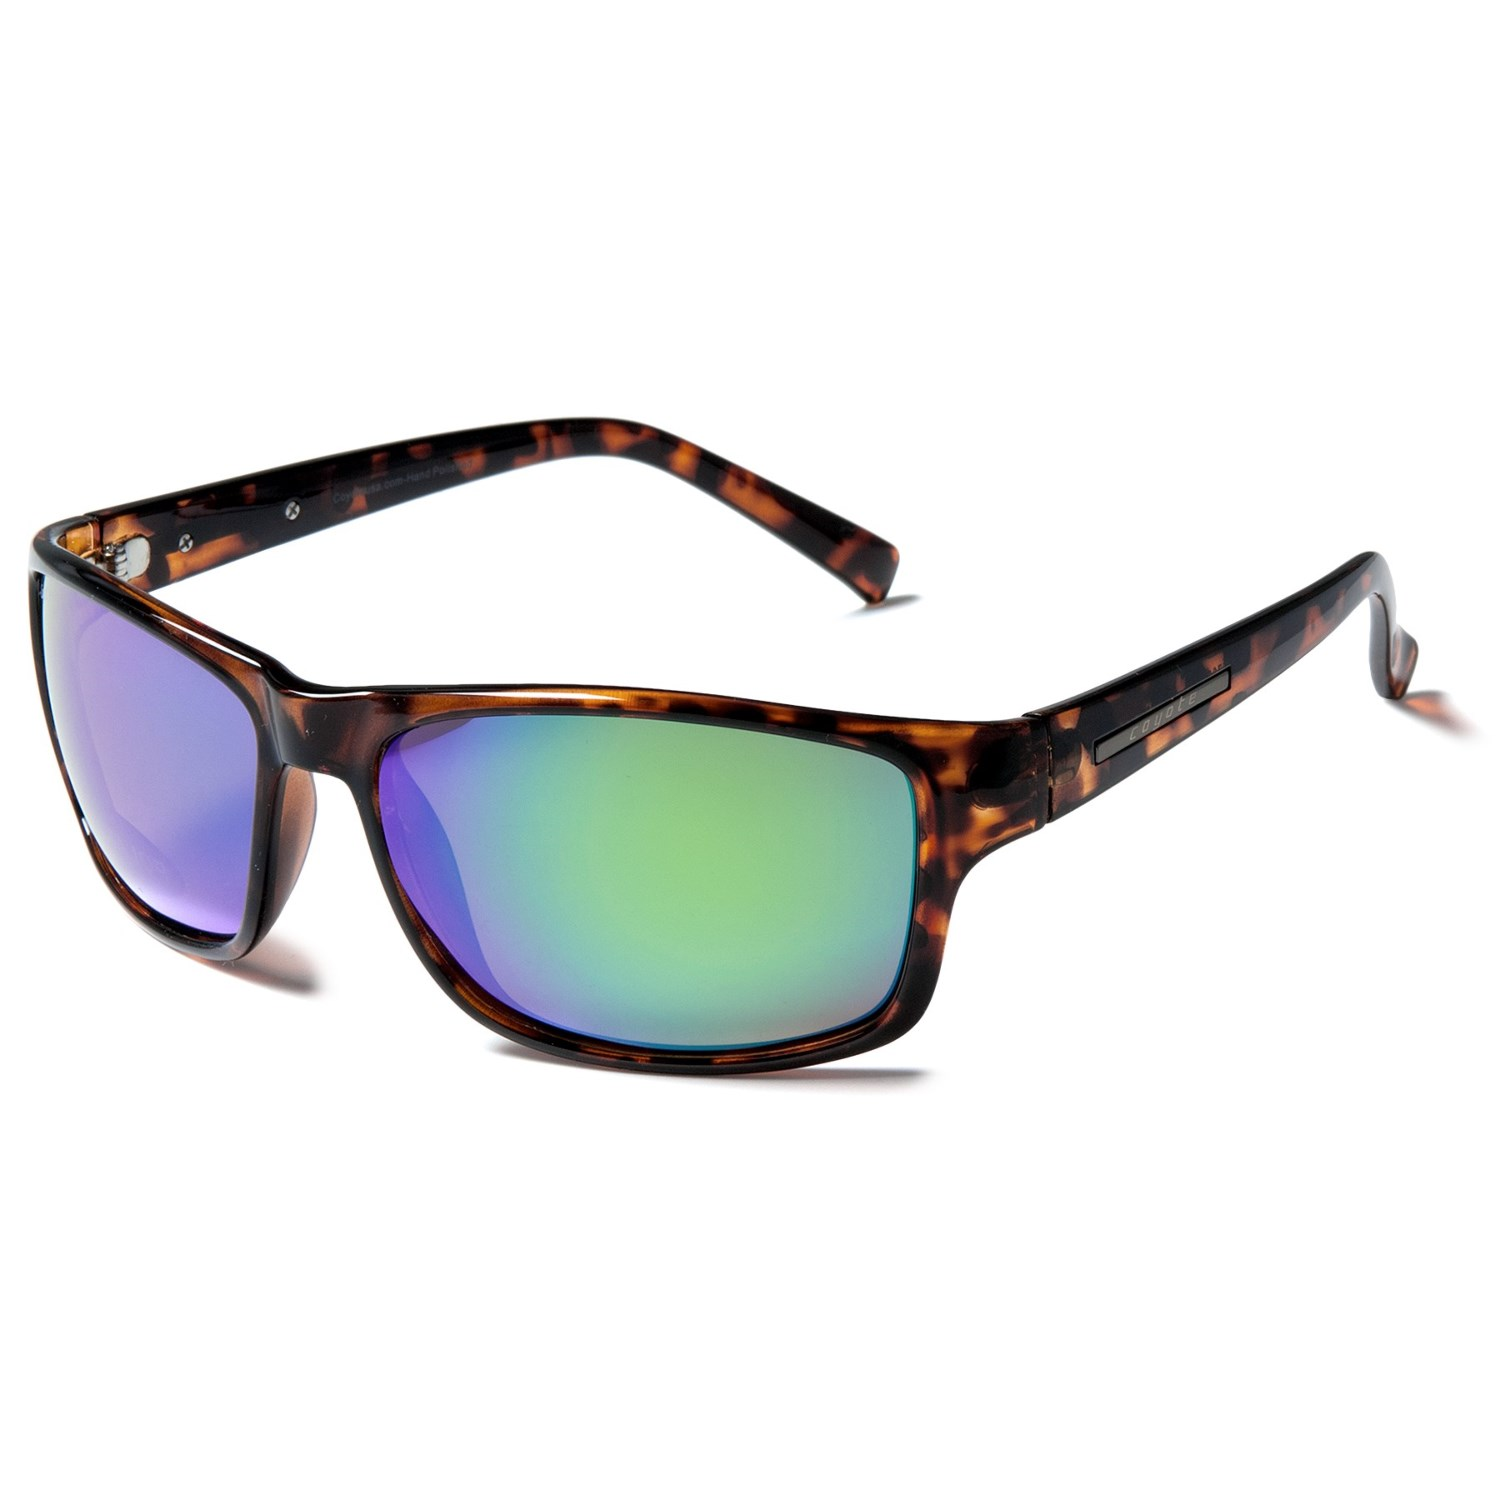 235a94dbe7 Coyote Eyewear Drifter Sunglasses - Polarized - Save 55%